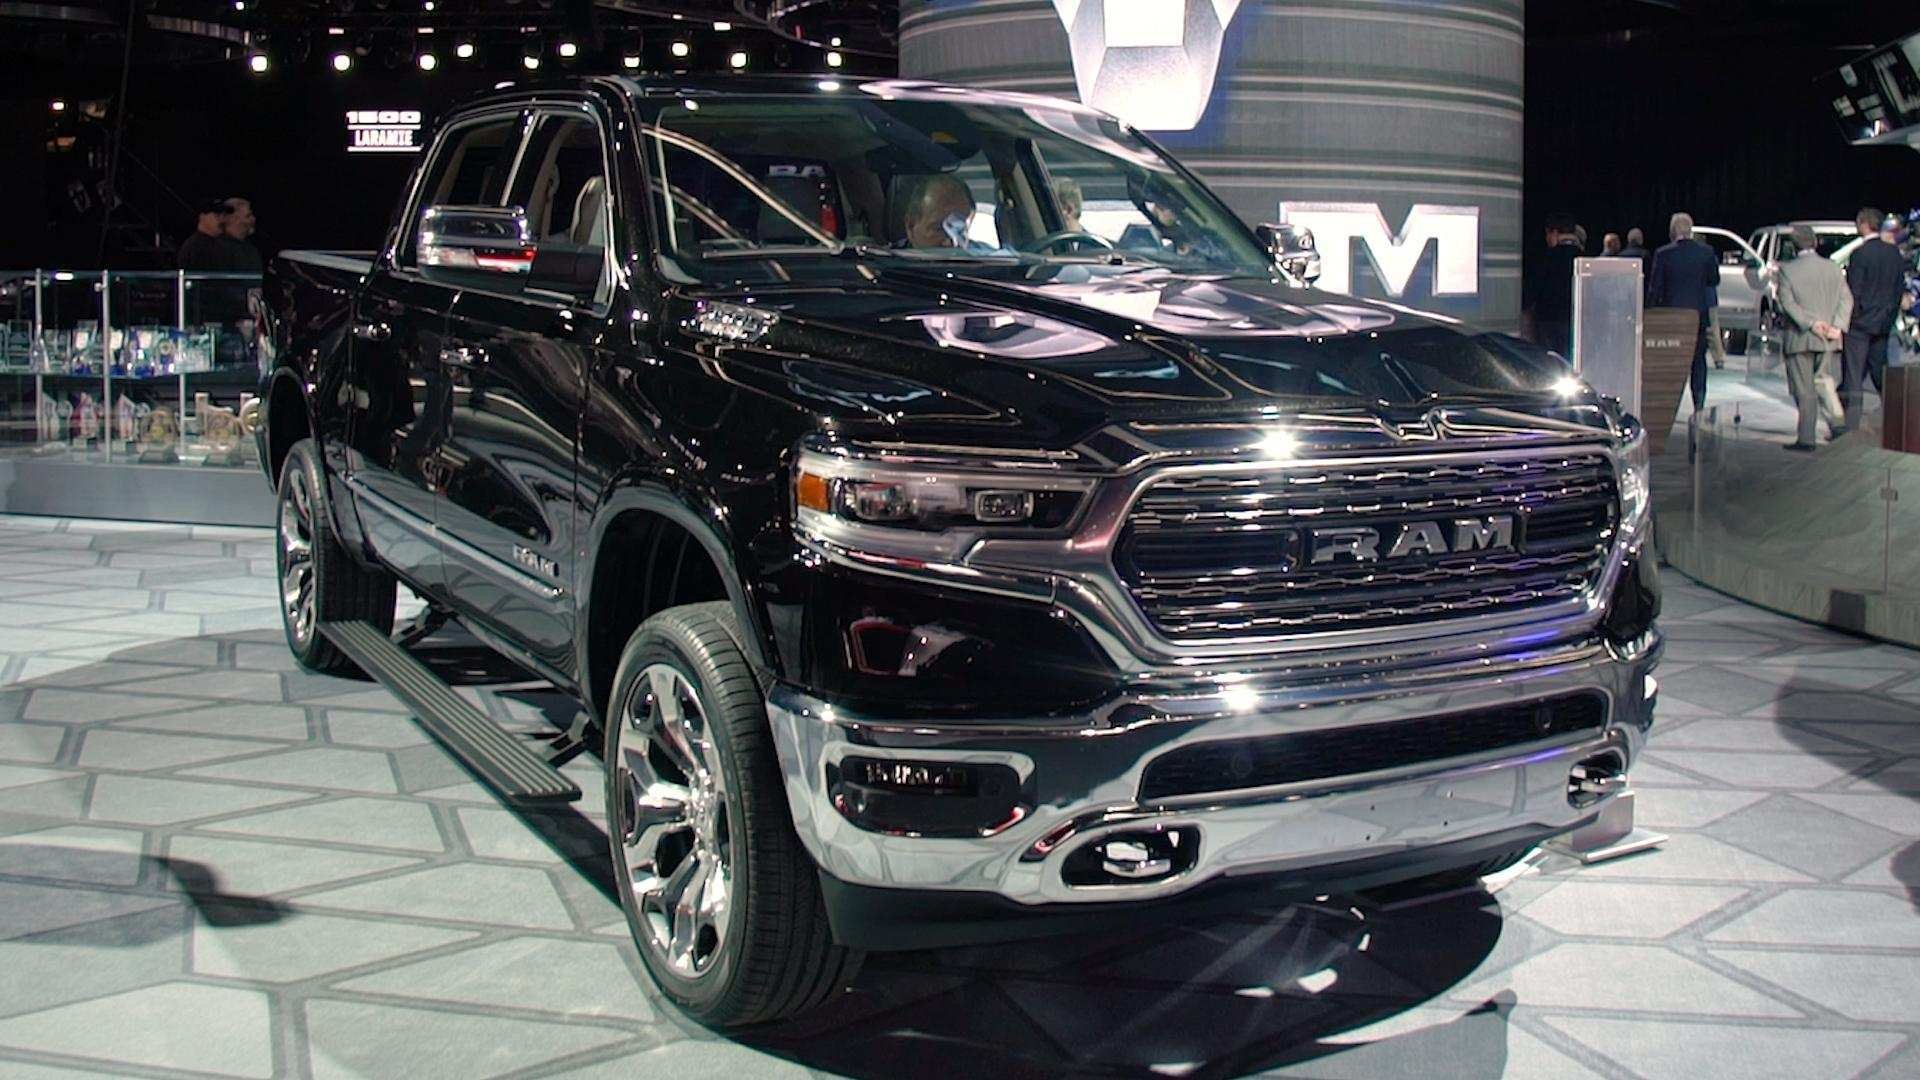 17 New 2019 Dodge Ram Truck Concept